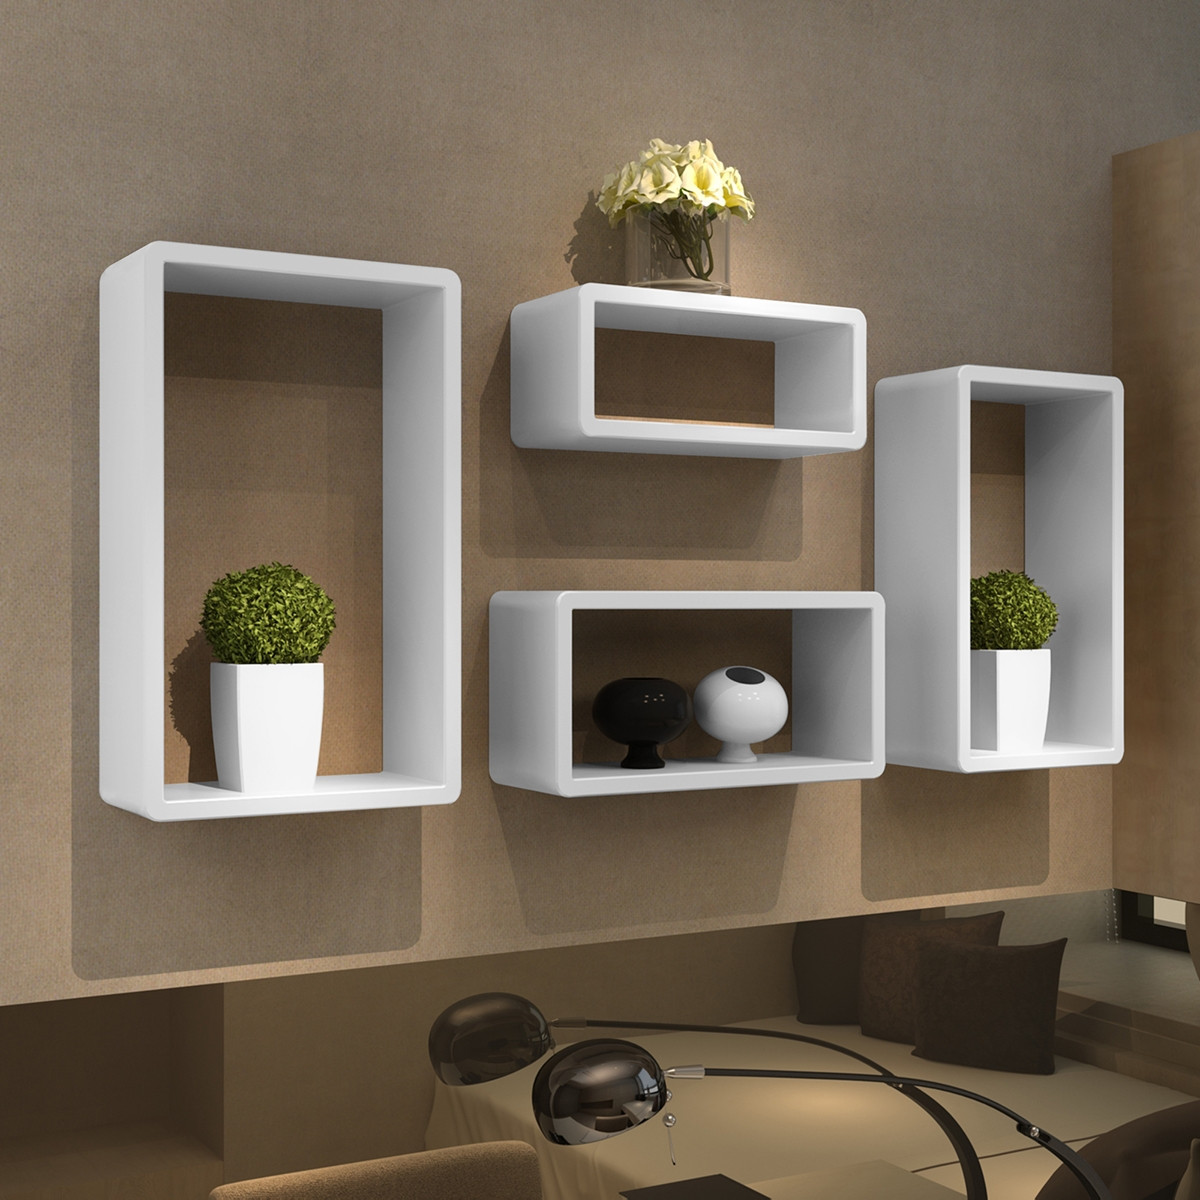 Murales De Pared Ikea Magnífica Outstanding Ikea Box Shelves 13 Best C3 A5 Storage Of Murales De Pared Ikea Único 11 Idées Pour L Application Des Palettes En Bois Dans Le